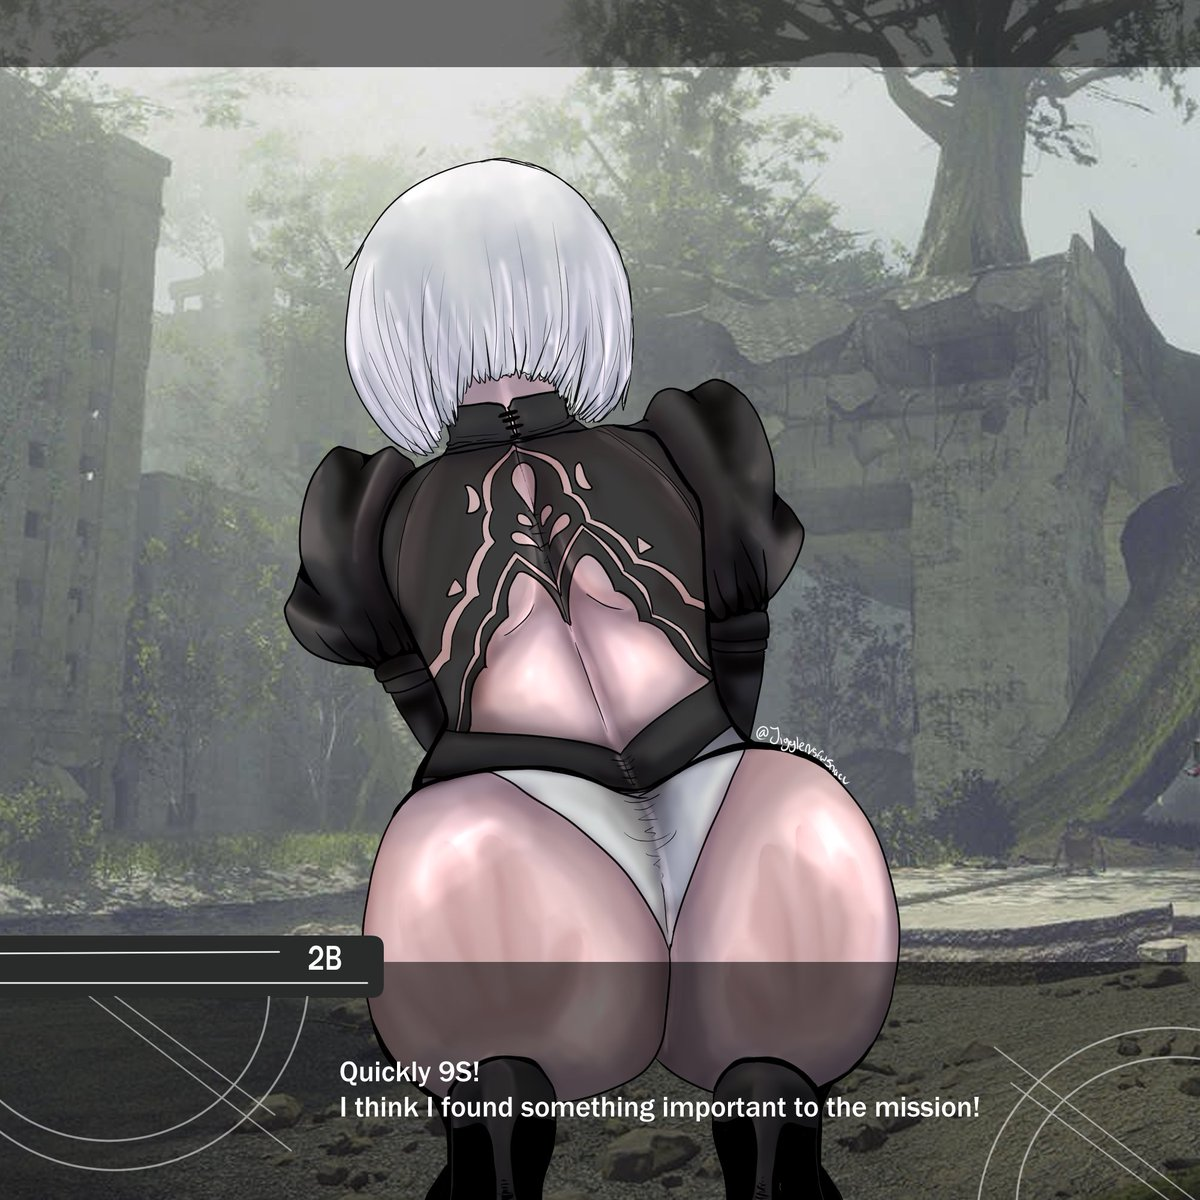 I've been playing some nier automata recently... and damn 2B is thicc....   #2Bfanart #NieRAutomata #fanart #NSFWart #videogameart #2B #buttcheeks #thiccc #thiccpic.twitter.com/4AXrU0iyvs